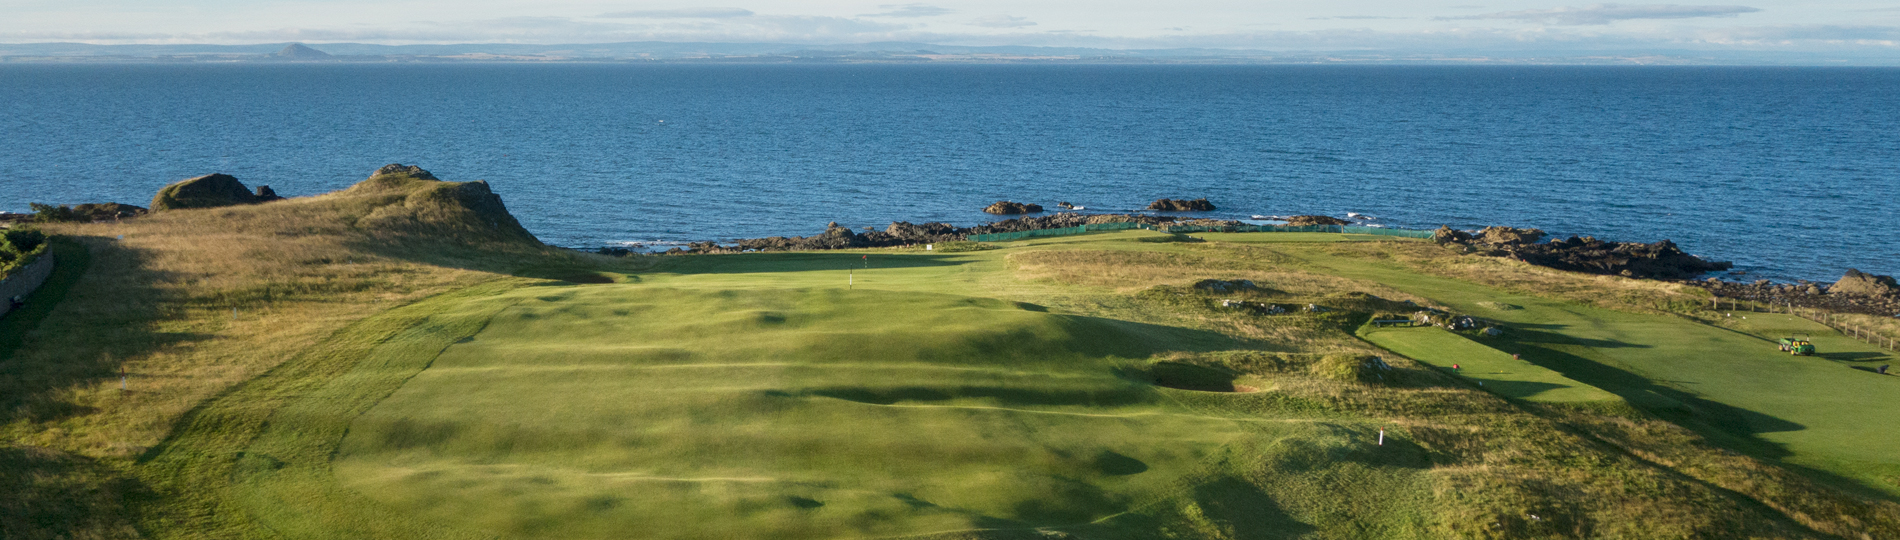 Golfing the British Isles: 12 Unexpectedly Awesome Courses to Play